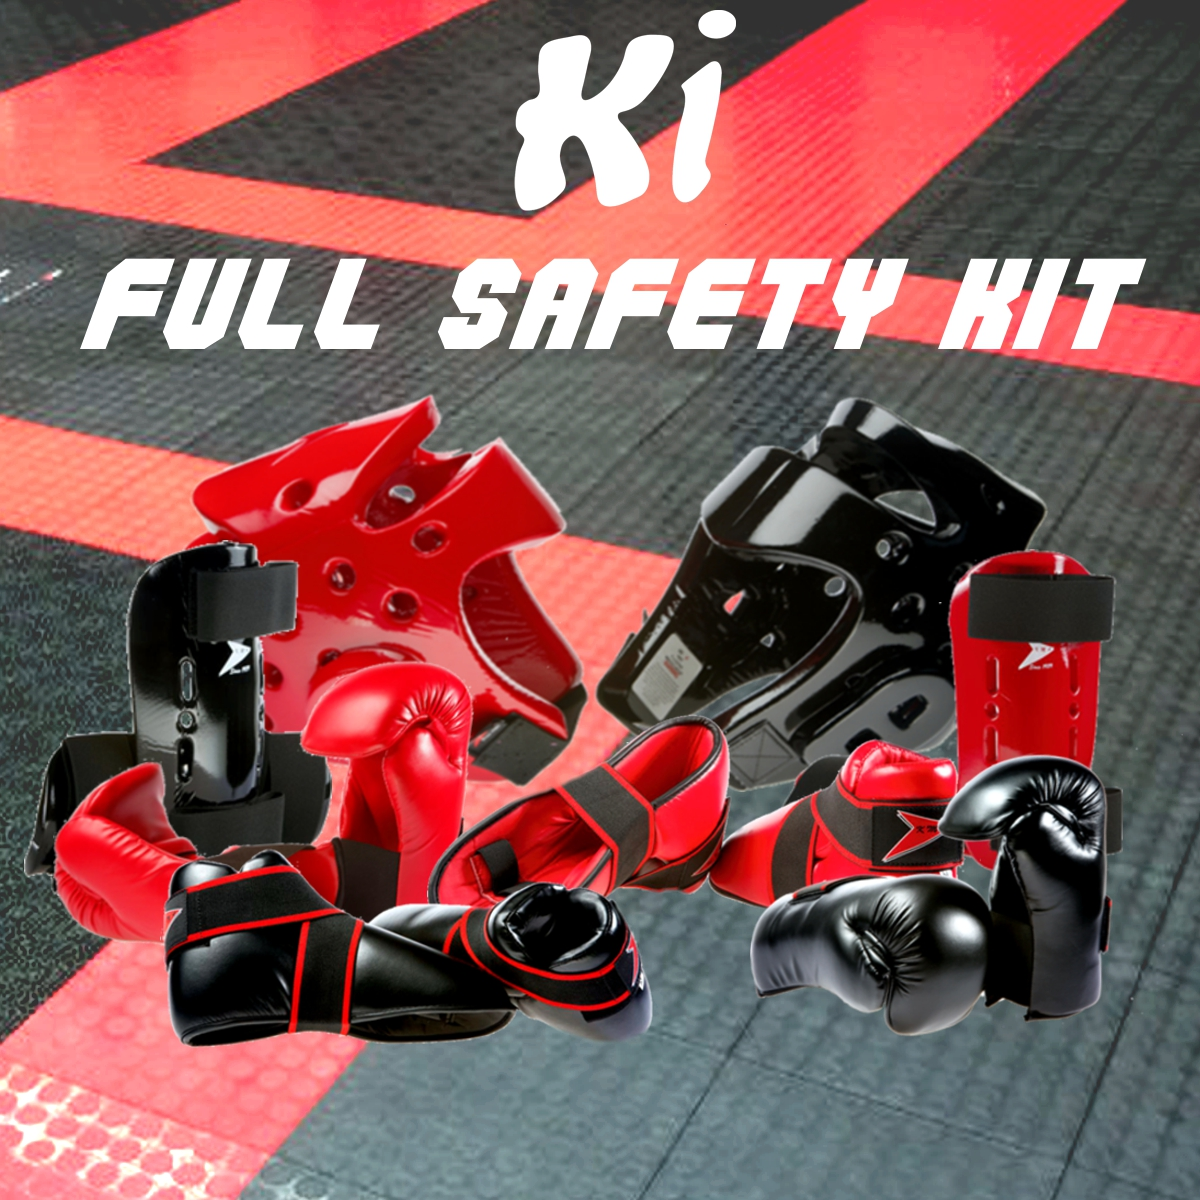 FULL SAFETY KIT